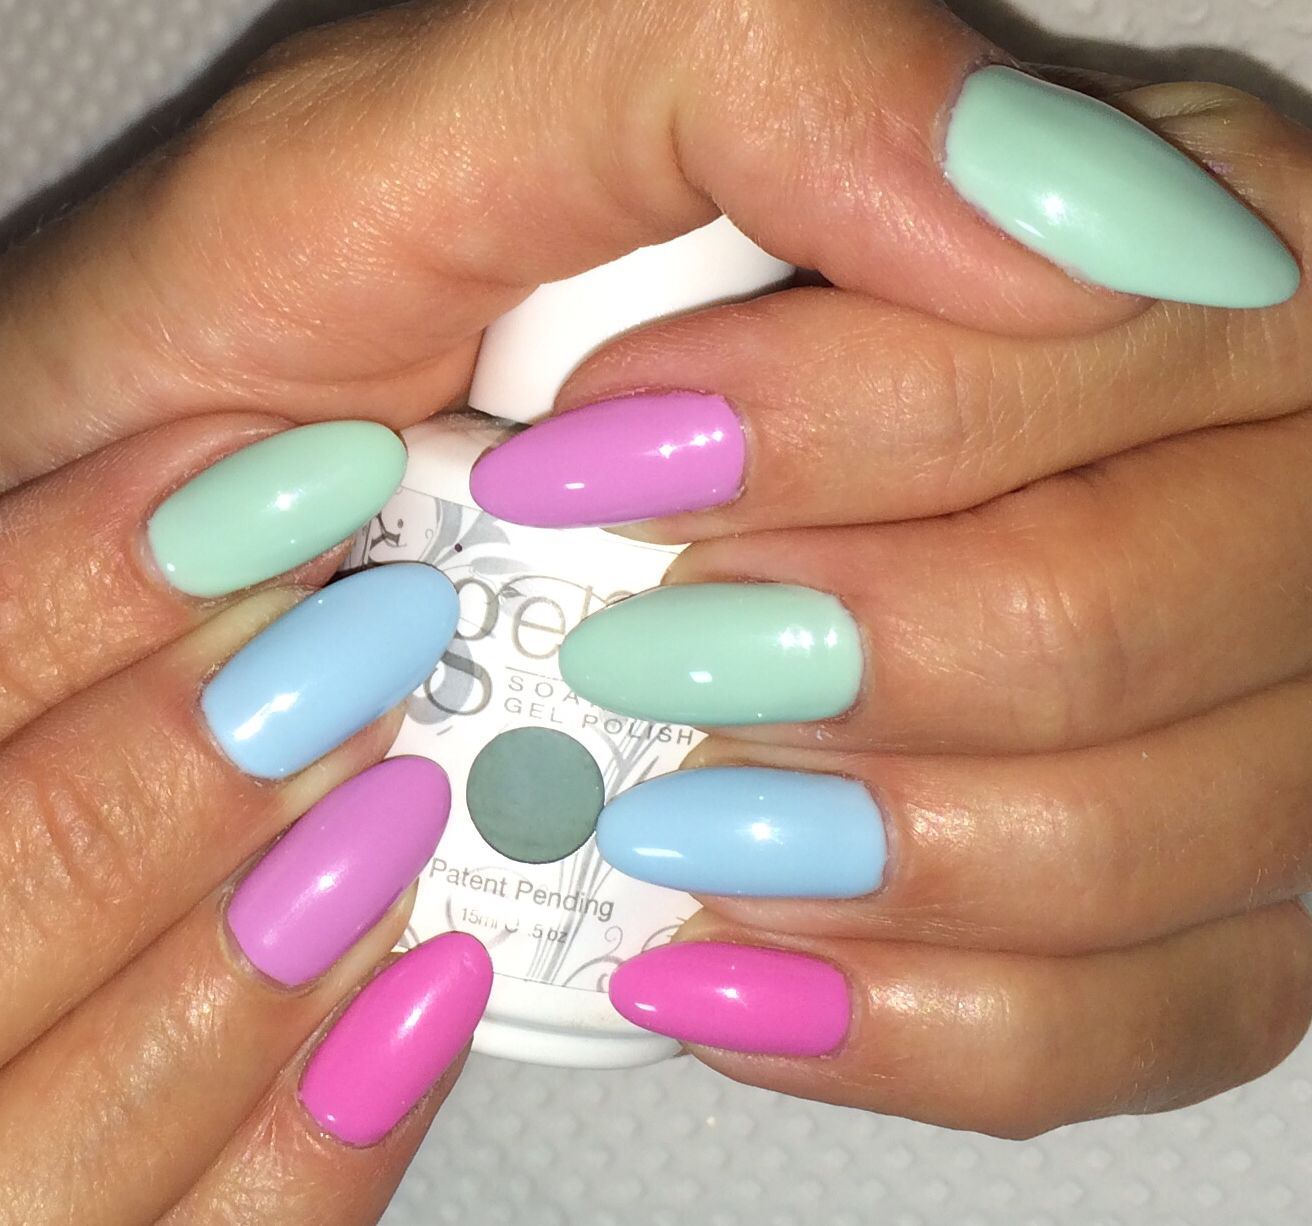 Spring 2014 nails almond nails pastel colors mint blue lilac spring 2014 nails almond nails pastel colors mint blue lilac pink nails gelish prinsesfo Choice Image